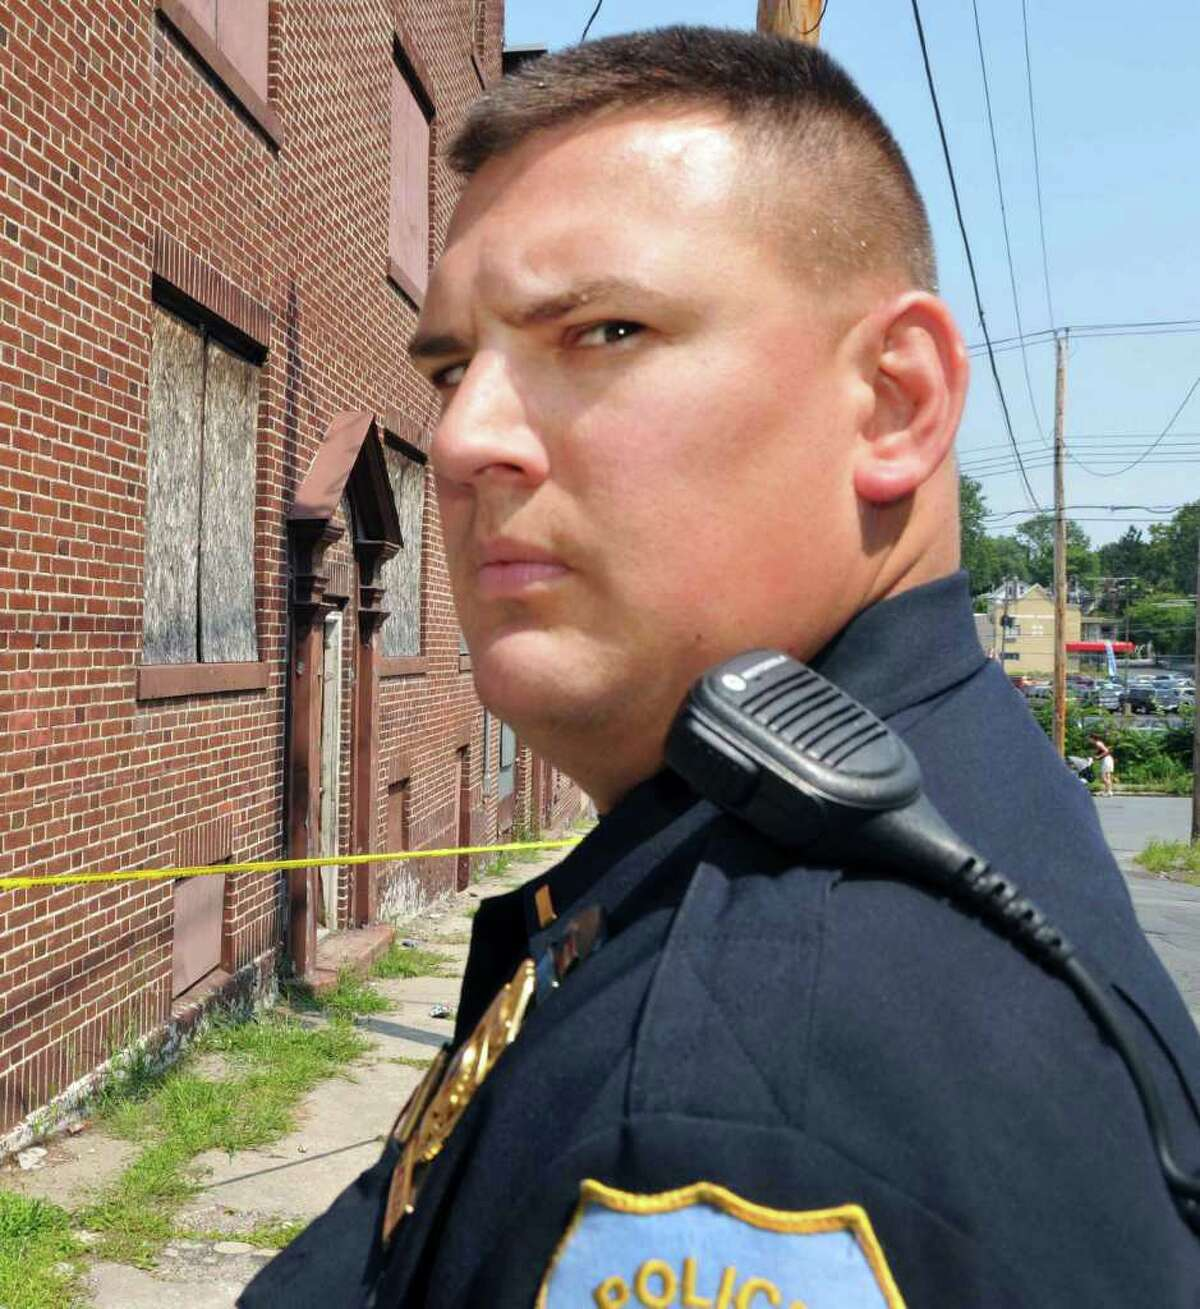 Schenectady police Lt. Mark McCracken at the former Andy's Ski Shoppe at 738 Albany Street in Schenectady Thursday Aug. 18, 2011. Neighbors say that a dead body was found in the apartment above the shop. (John Carl D'Annibale/Times Union archive)